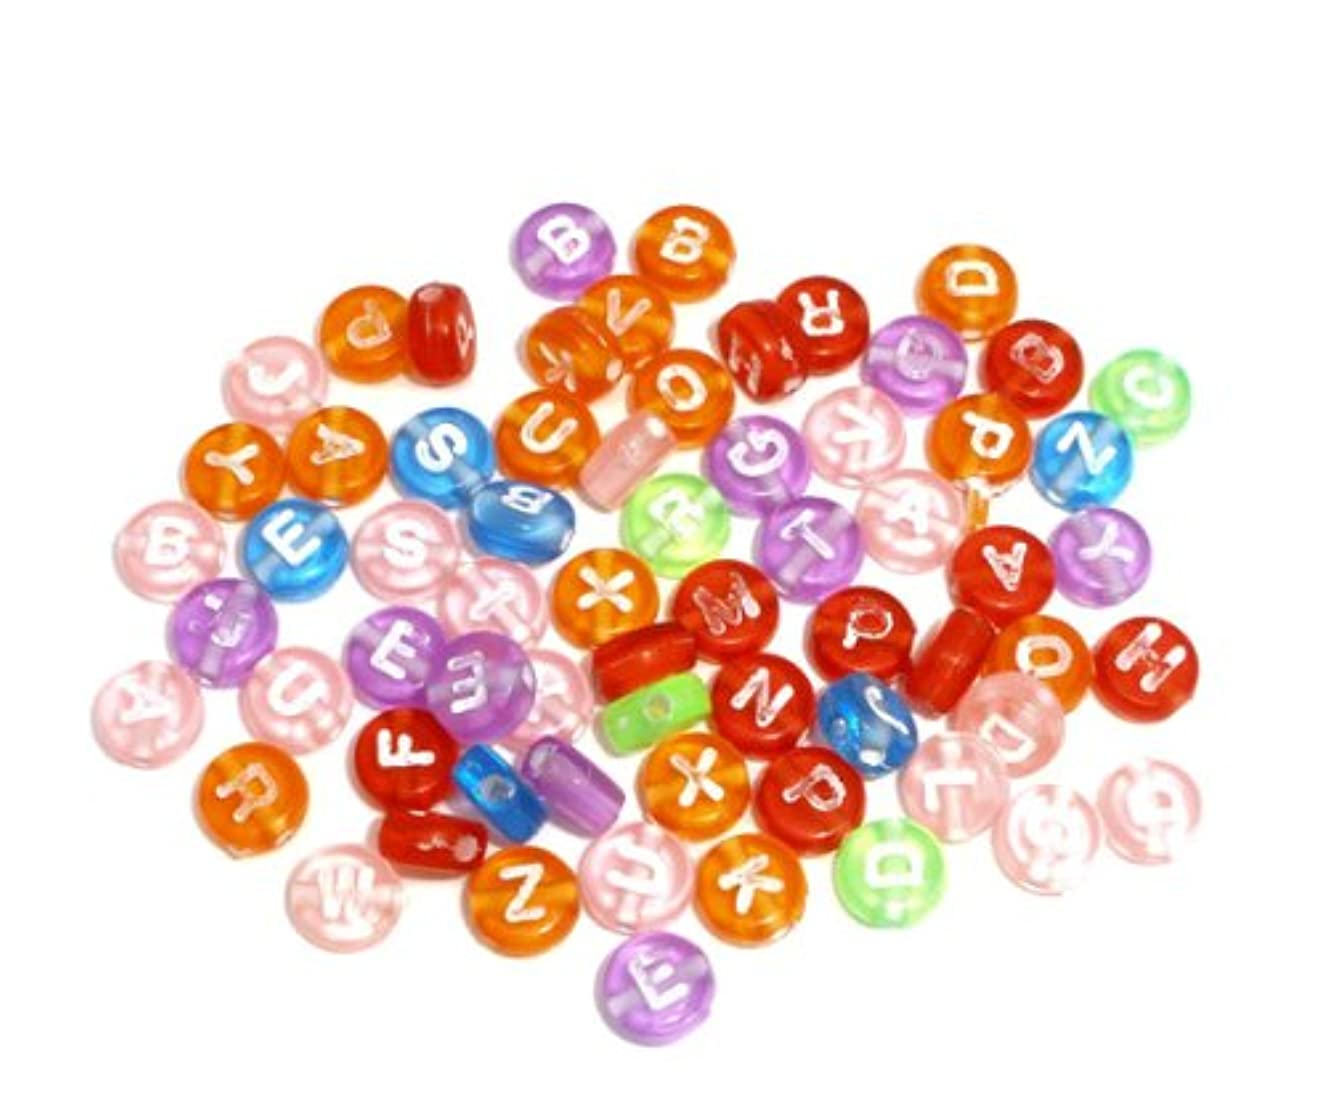 200pc Mixed Transparent Acrylic Letter Spacers Beads 7mm Findings